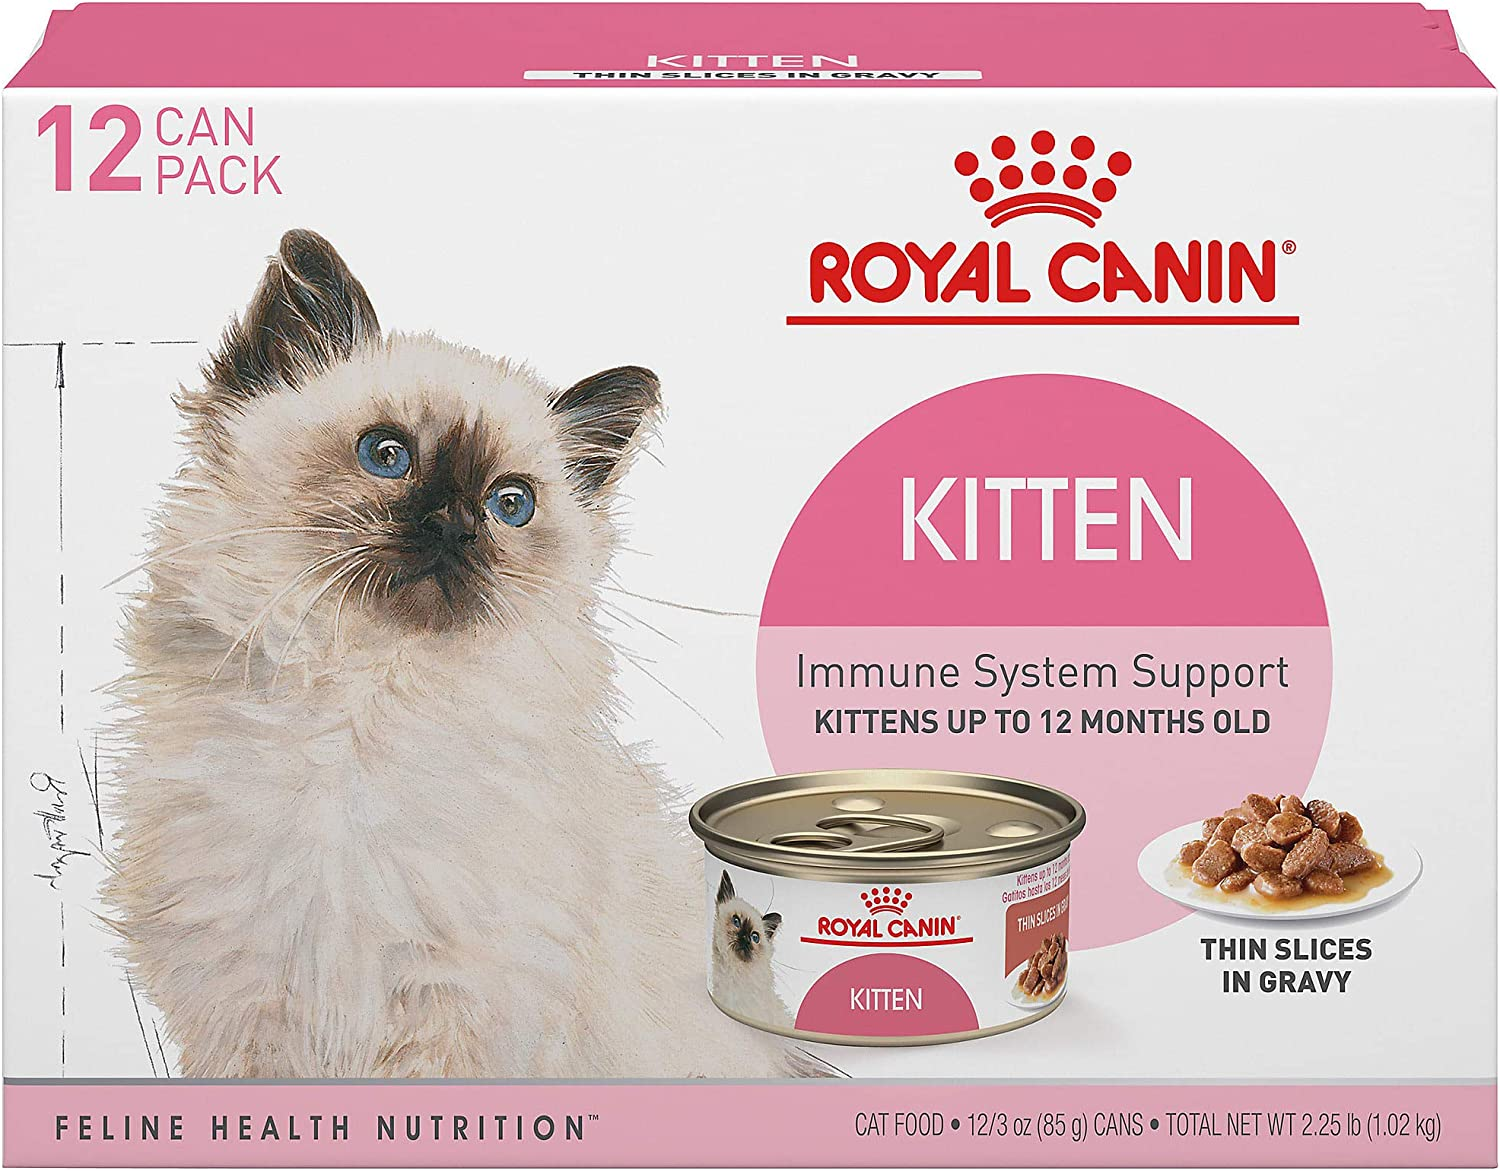 Royal Canin Feline Health Nutrition Thin Slices in Gravy Variety Pack Wet Kitten Food, 3 oz., Count of 12, 12 CT